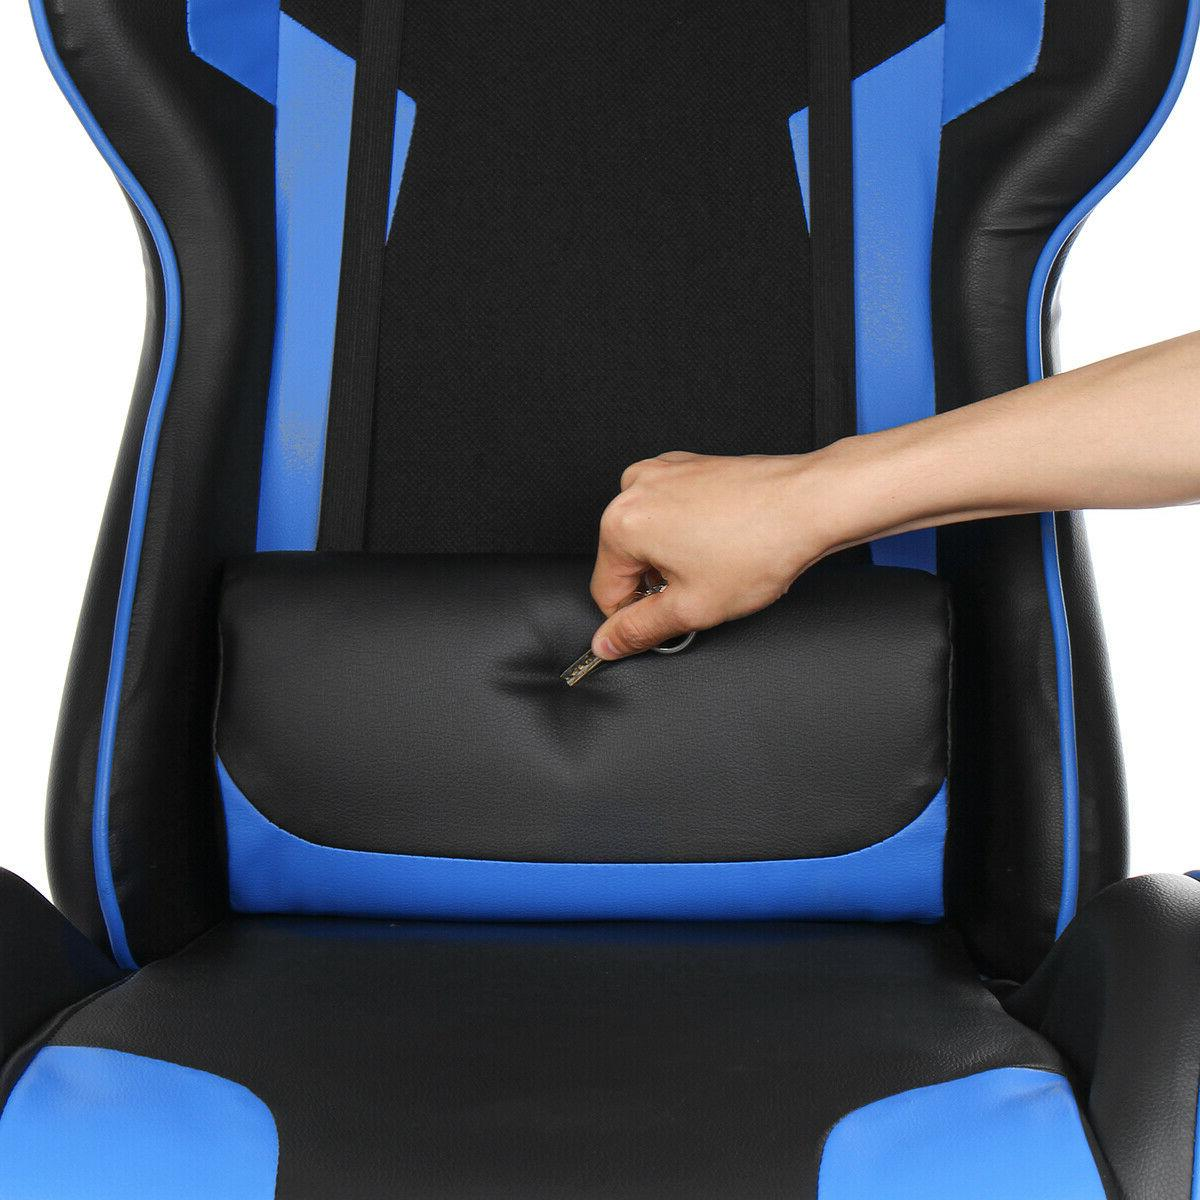 Ergonomic Racing Gaming Office Chair Swivel Computer Seat Recliner